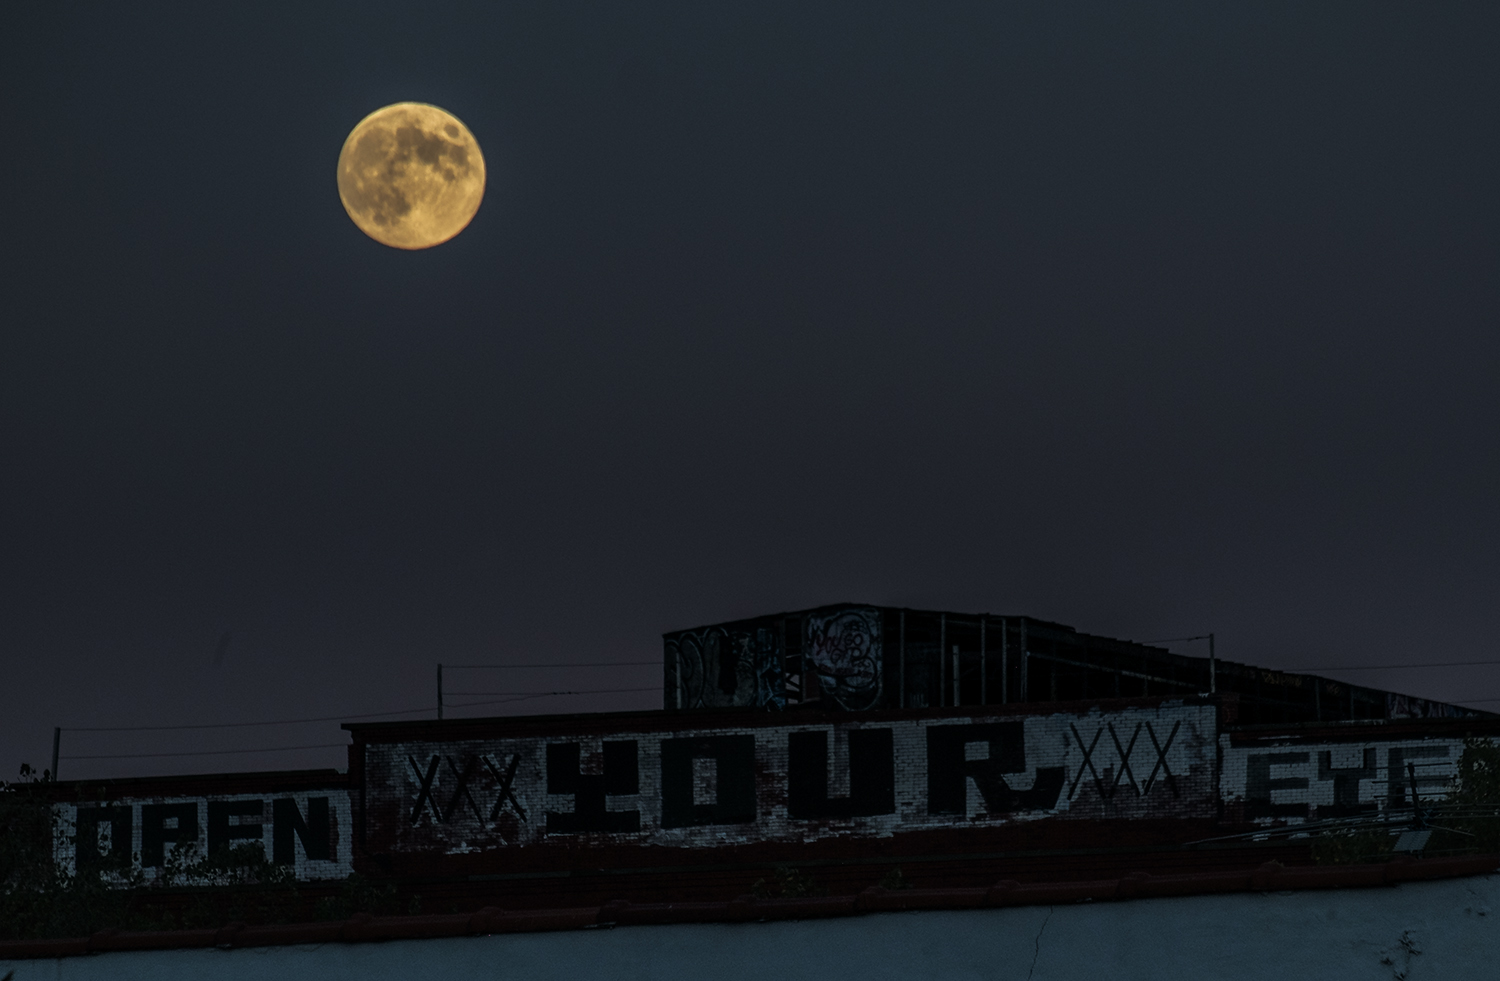 I was able to just eke out this shot of the full moon and get some detail in the buildings during nautical twilight. Fuji X-Pro1 with a  Fuji 55-200mm f/3.5-4.8  lens set at 200mm. 1/250, f/8, ISO 400.